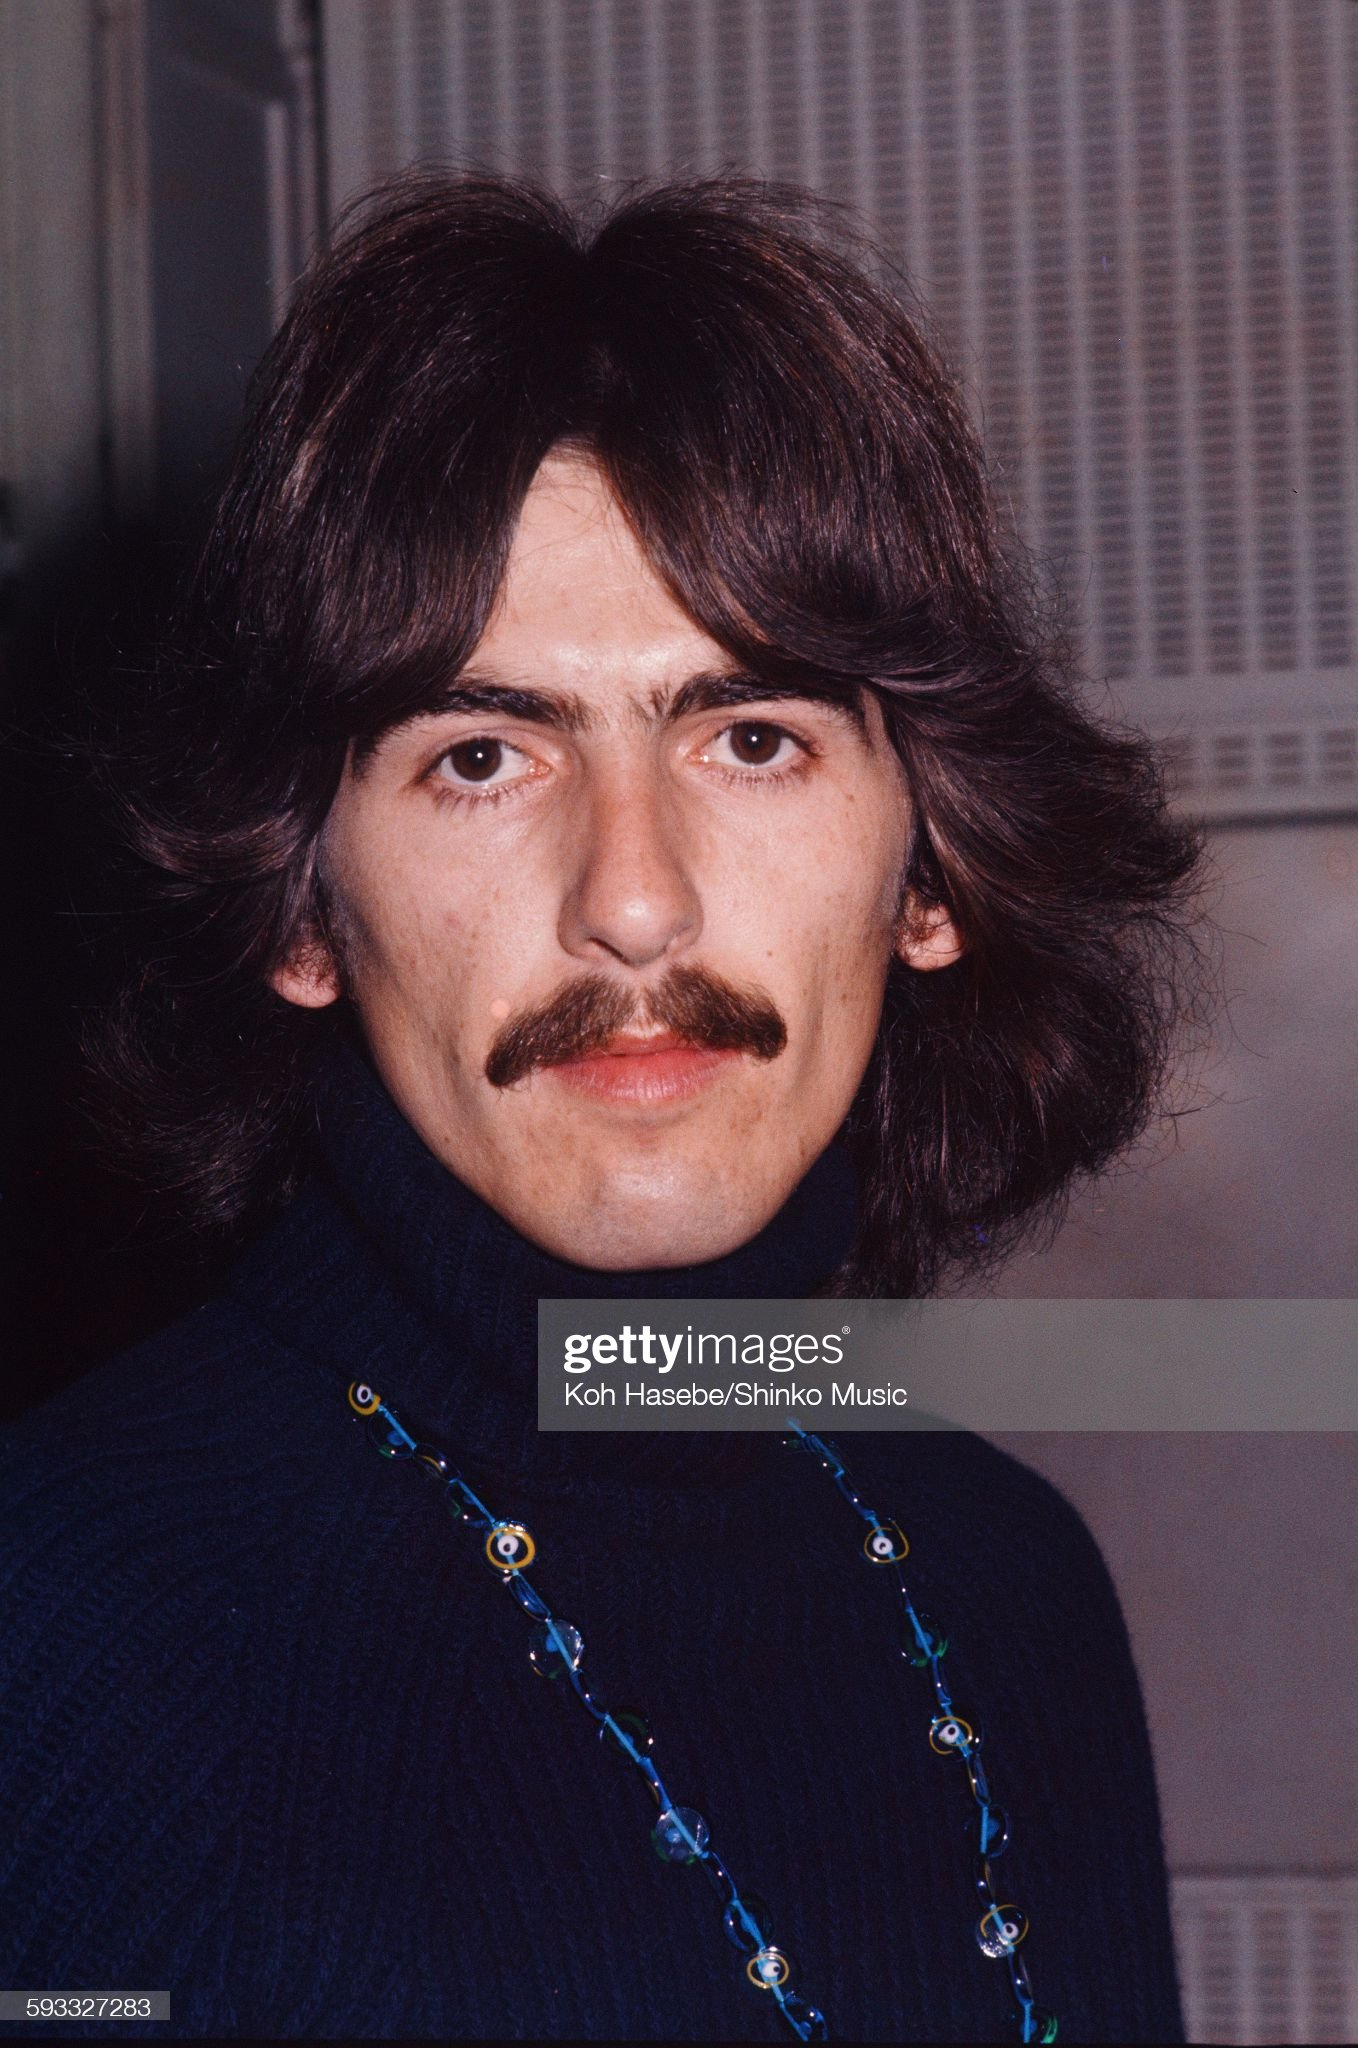 ¿Cuánto mide George Harrison? - Altura - Real height Beatles-george-harrison-at-emi-studio-london-september-1967-picture-id593327283?s=2048x2048